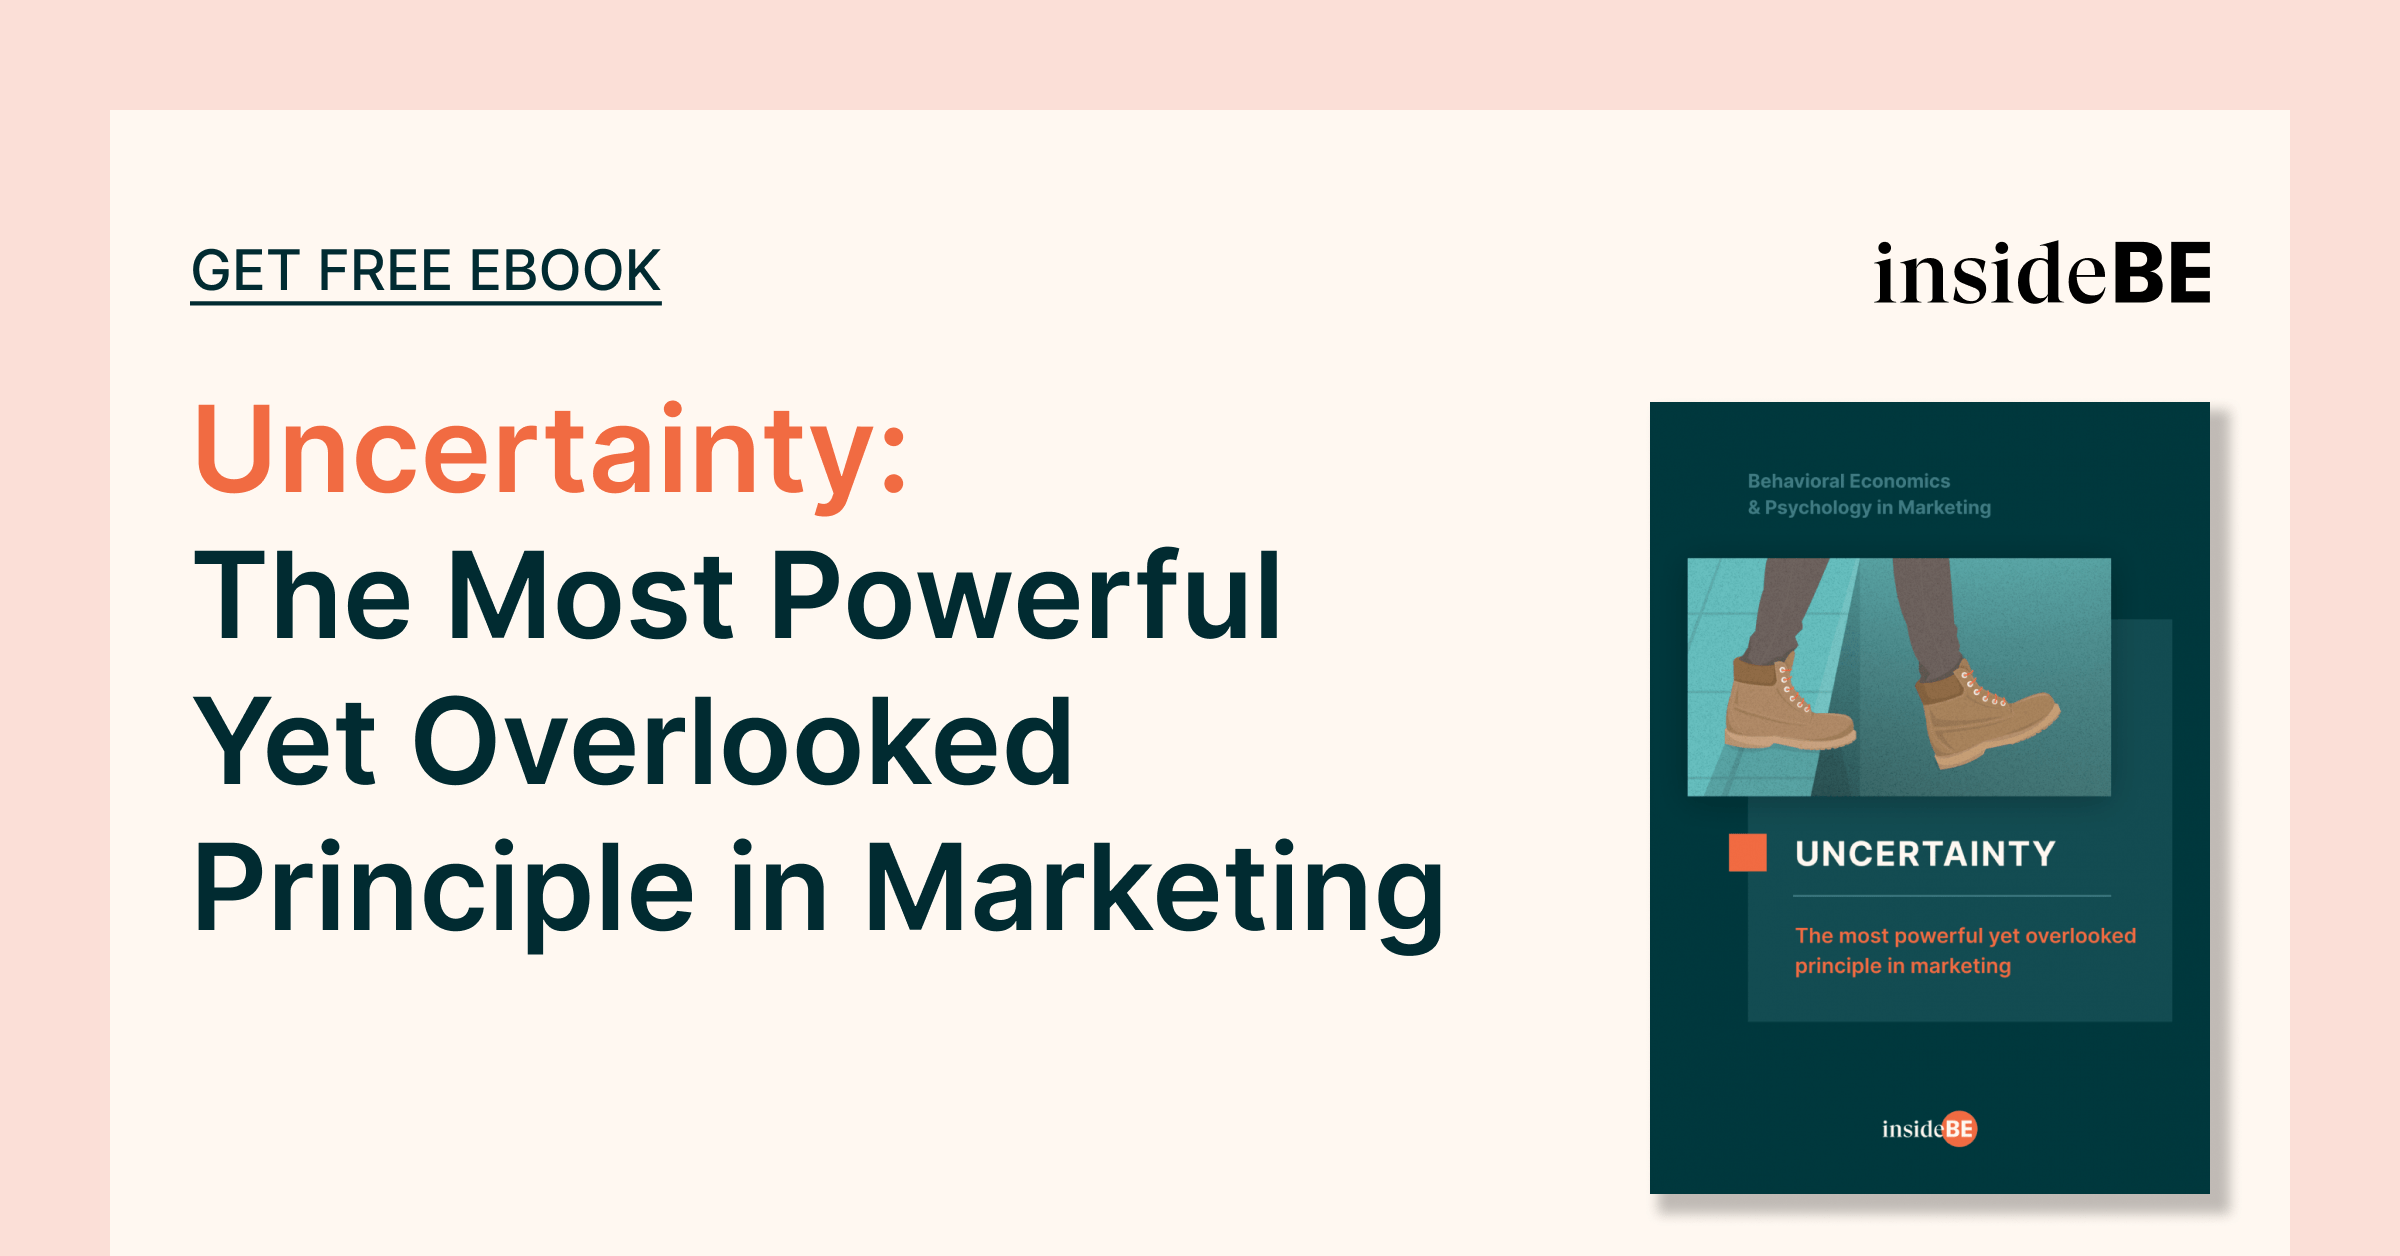 Uncertainty: The Most Powerful Yet Overlooked Principle in Marketing